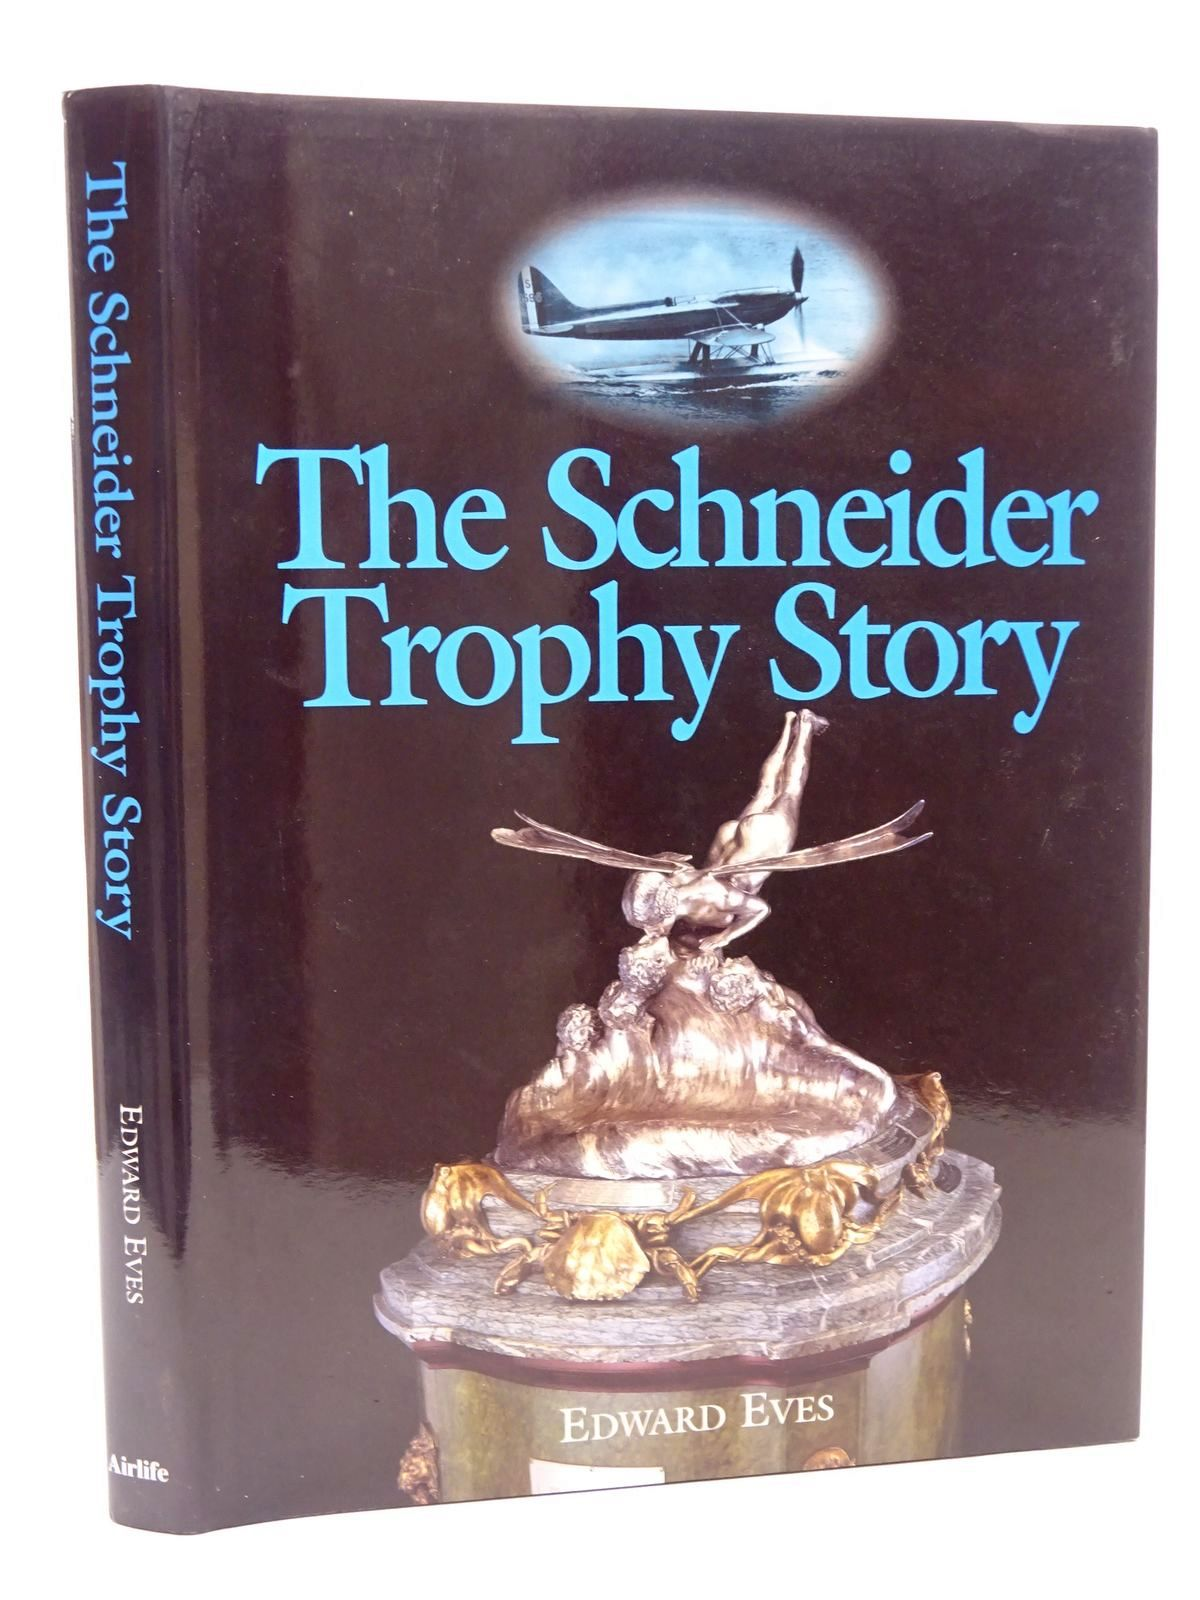 The Schneider Trophy by Edward Eves